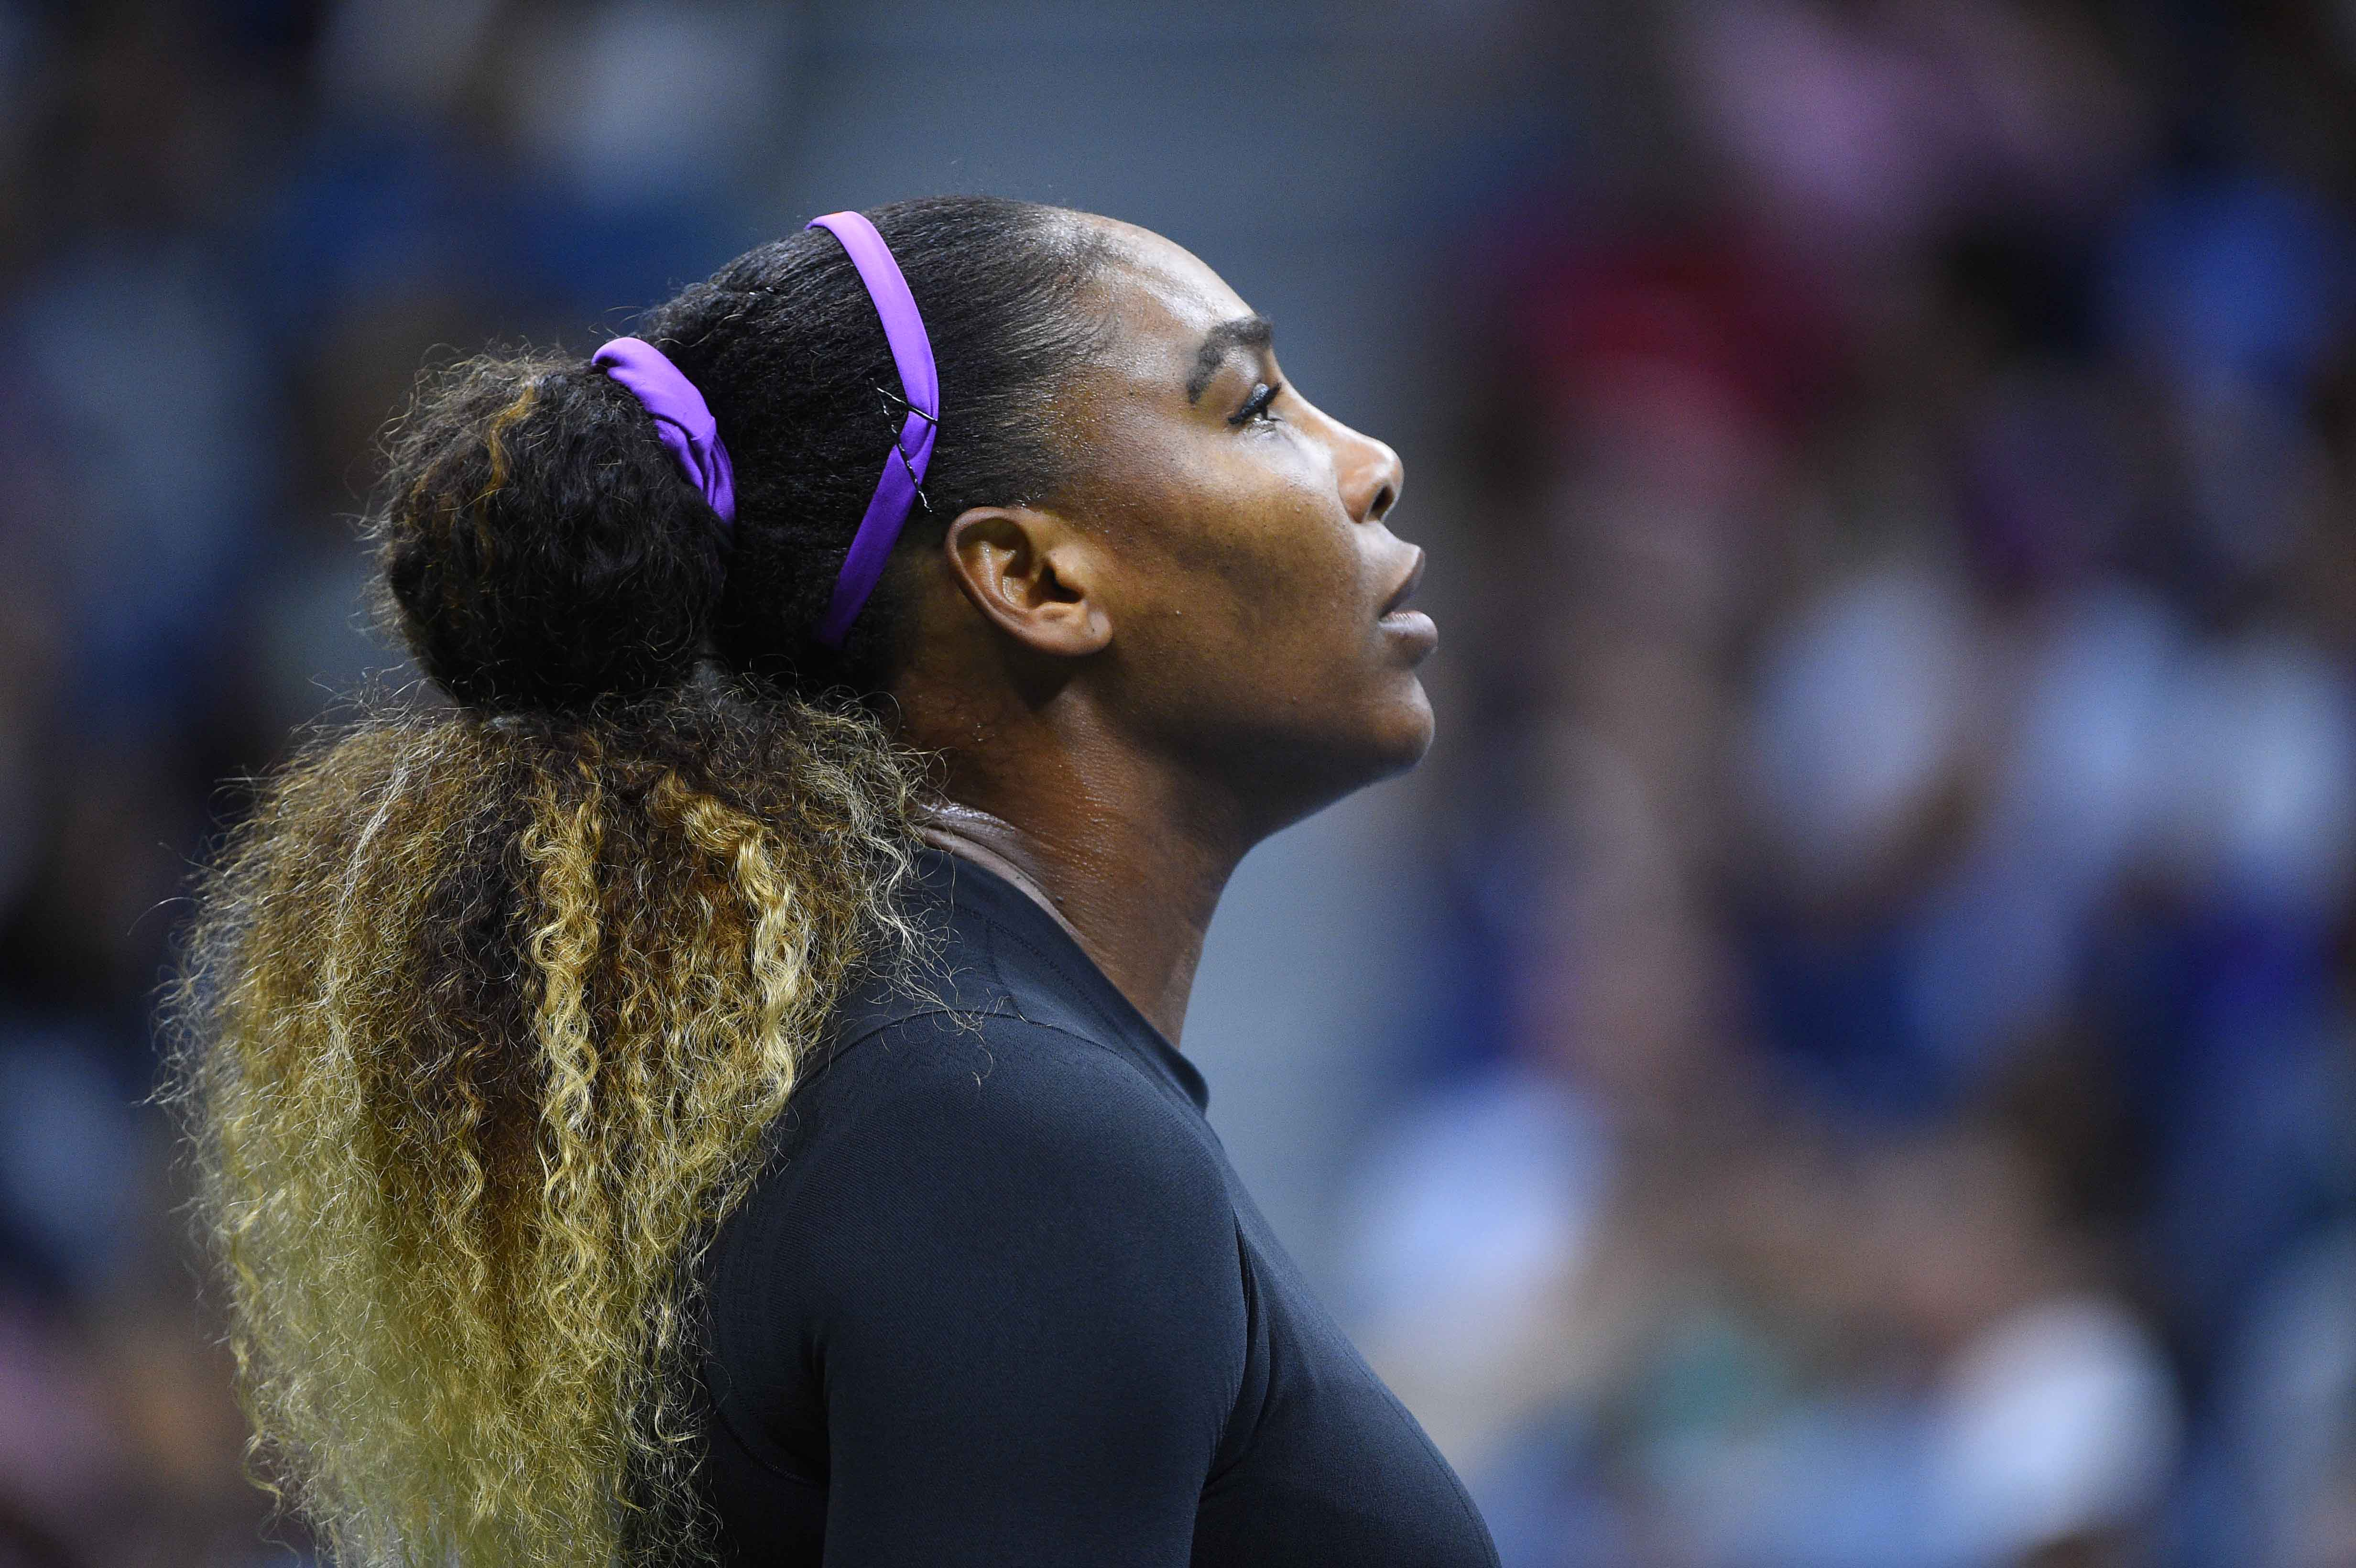 Serena Williams portrait during her first round match at the US Open 2019